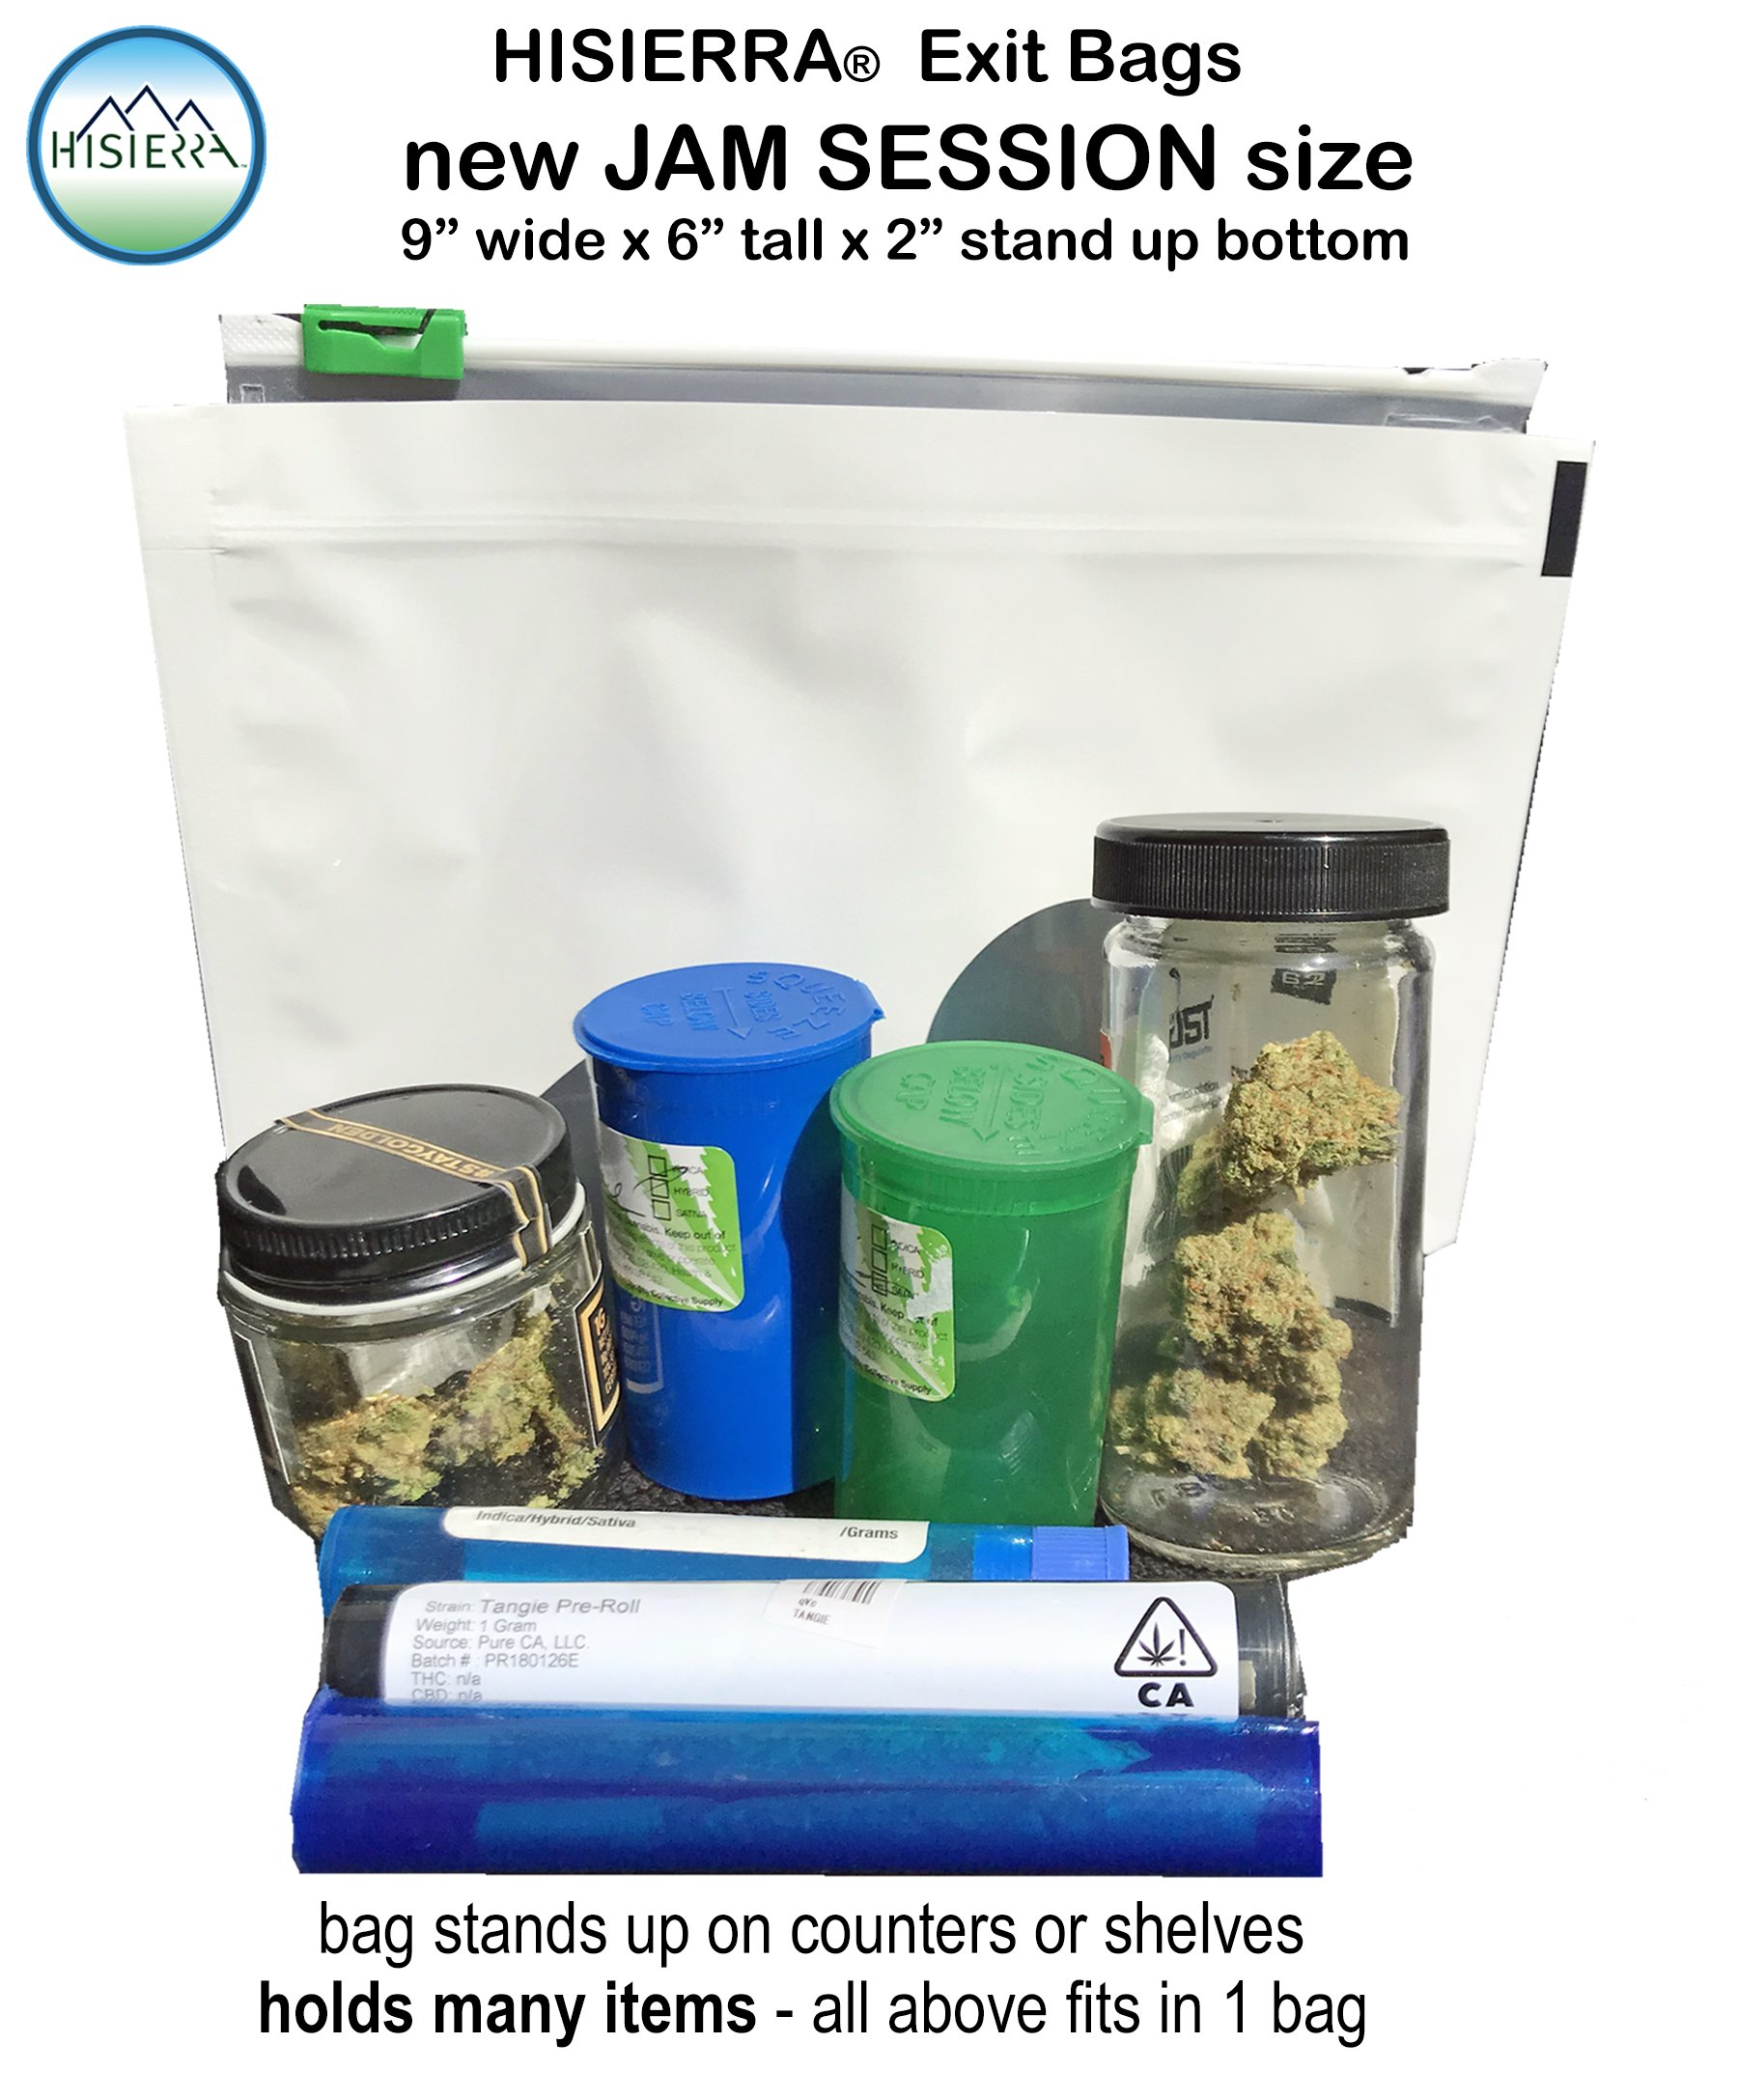 HISIERRA child resistant exit bags JAM SESSION 9 x 6 x 2 size by HISIERRA Cannabis Packaging (Image #3)